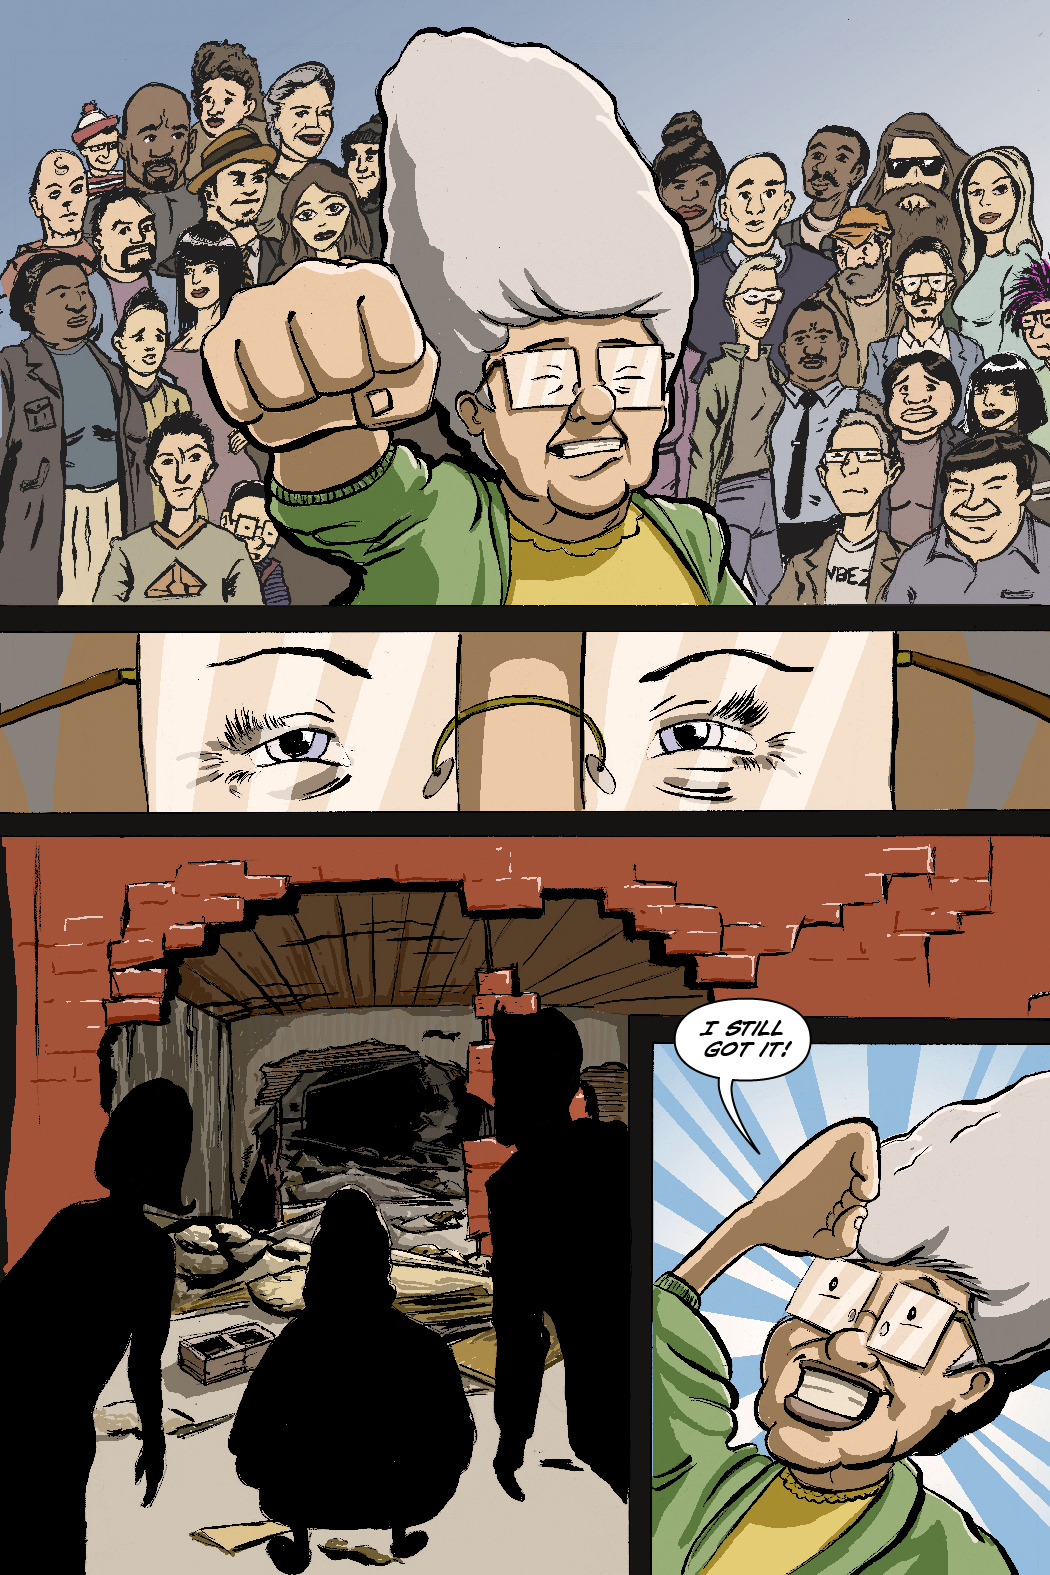 PAGE 51 Panel 1. Gram Gram alone with her arm outstretched a crowd gathered behind her. Her eyes are shut.  Panel 2. Her eyes open.  Panel 3. We see from behind her a giant hole of wreckage.  Panel 4. Raises her arm in victory. GRAMGRAM: Still got it!